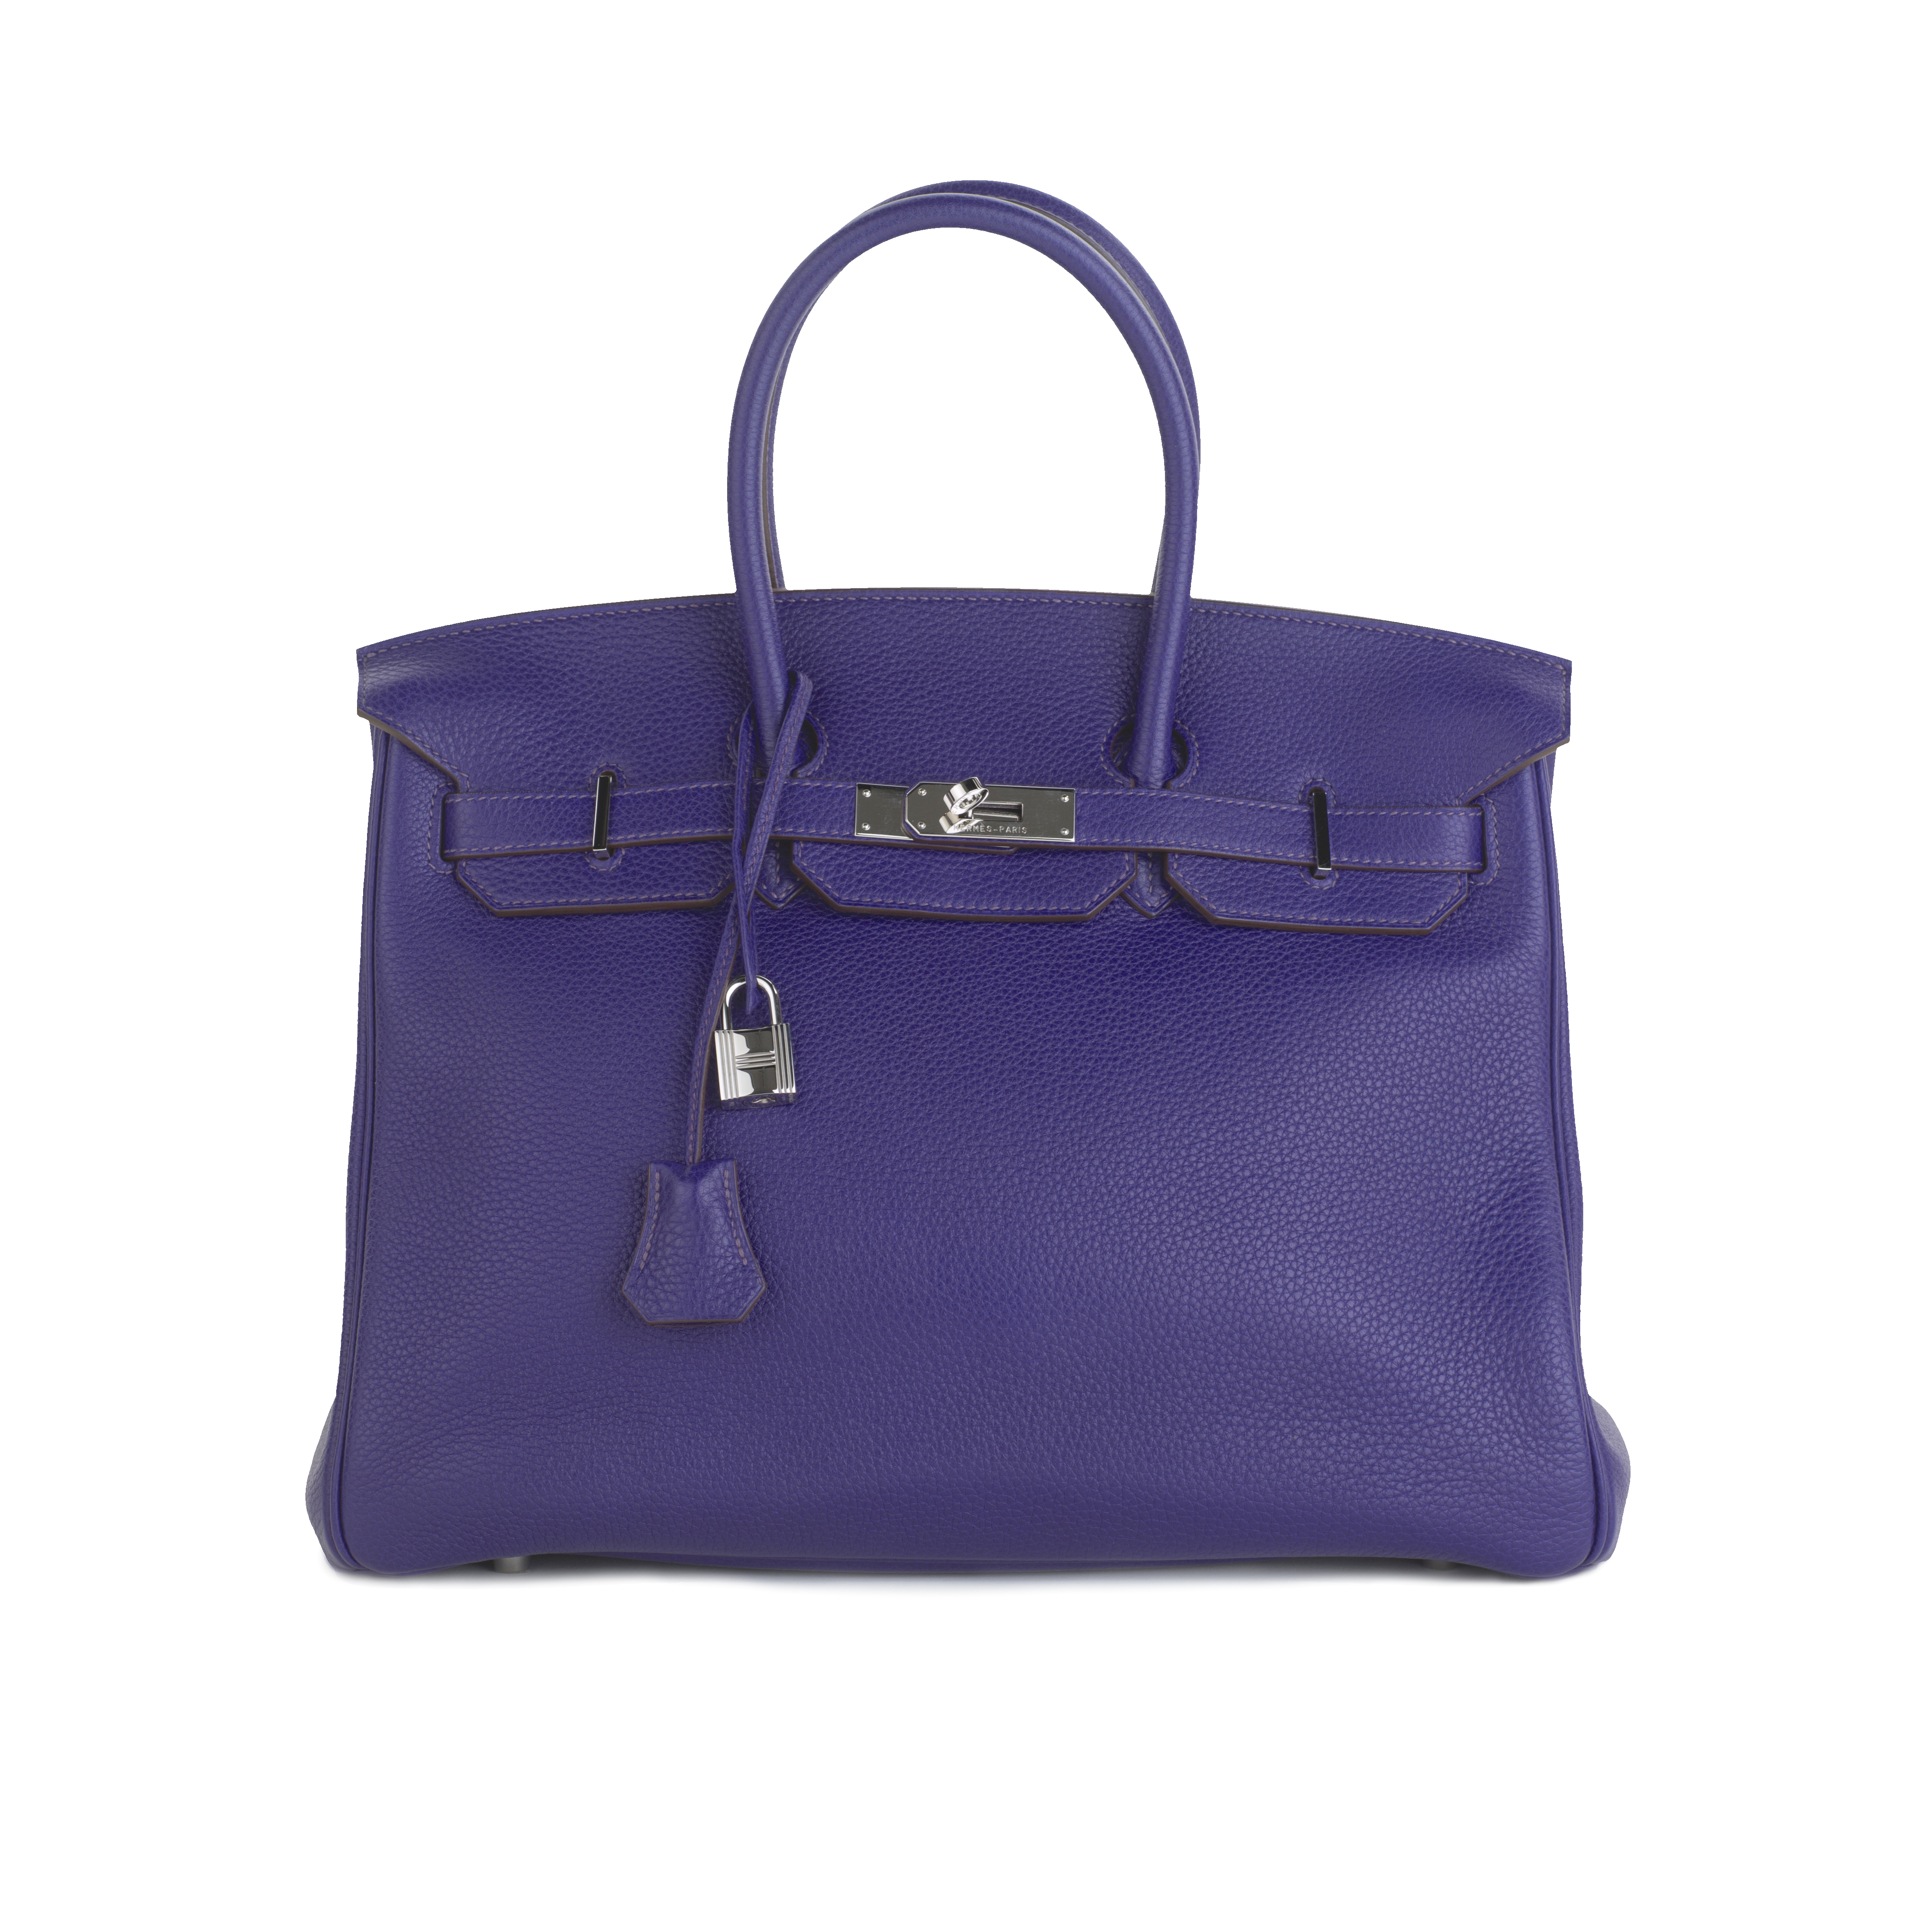 View full screen - View 1 of Lot 717. HERMÈS | ULTRAVIOLET BIRKIN 35 IN TAURILLON CLEMENCE LEATHER WITH PALLADIUM HARDWARE, 2010.